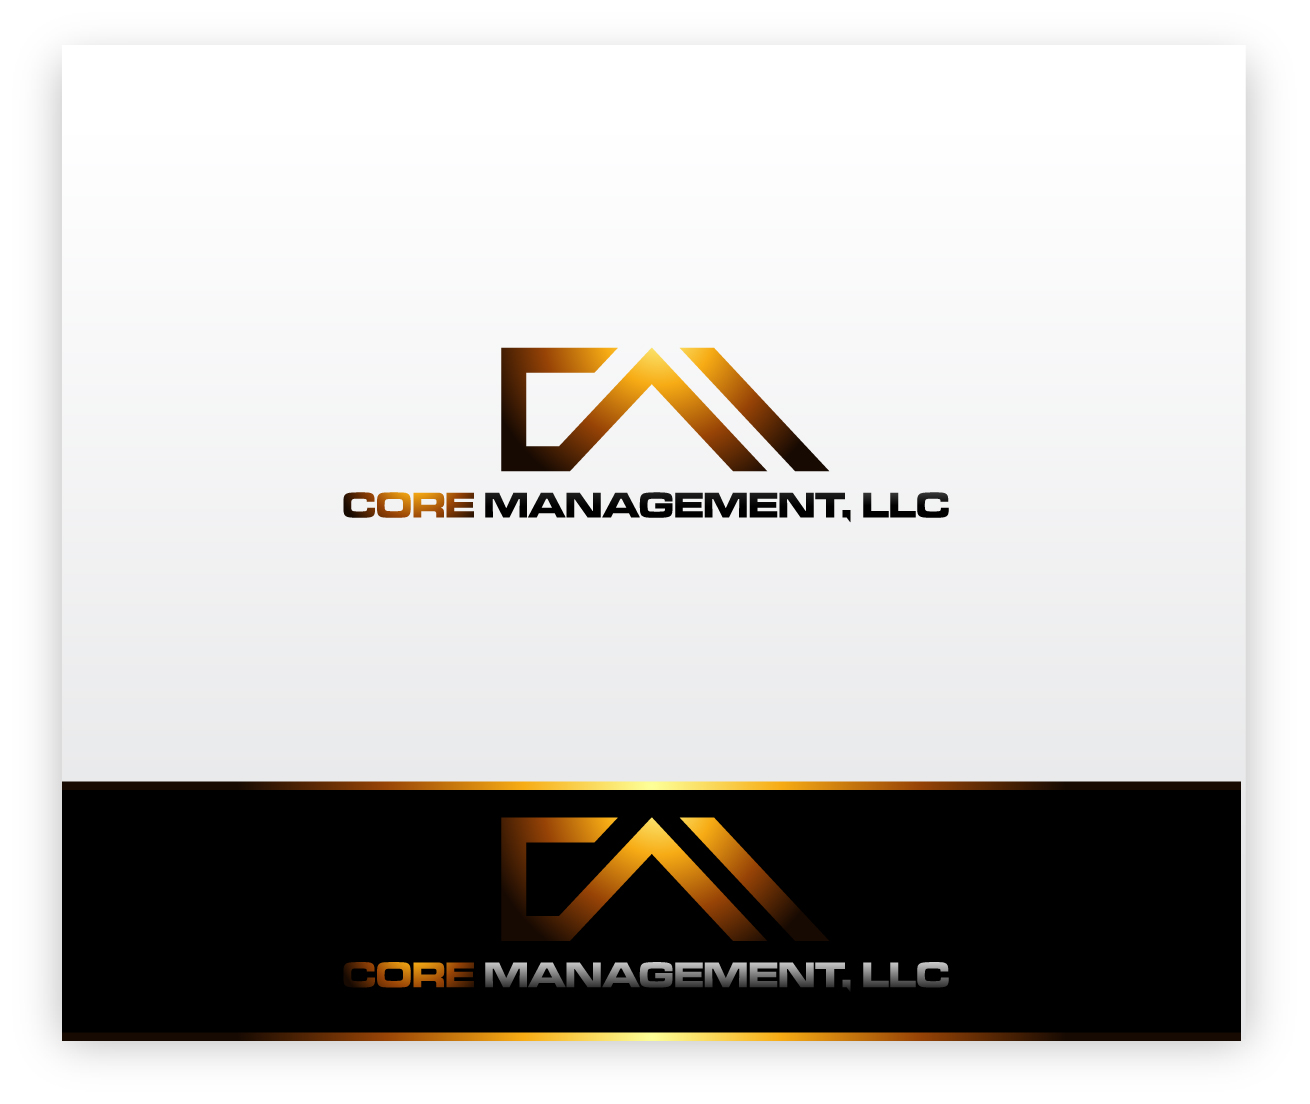 Logo Design by zoiDesign - Entry No. 41 in the Logo Design Contest Creative Logo Design for CORE Management, LLC.